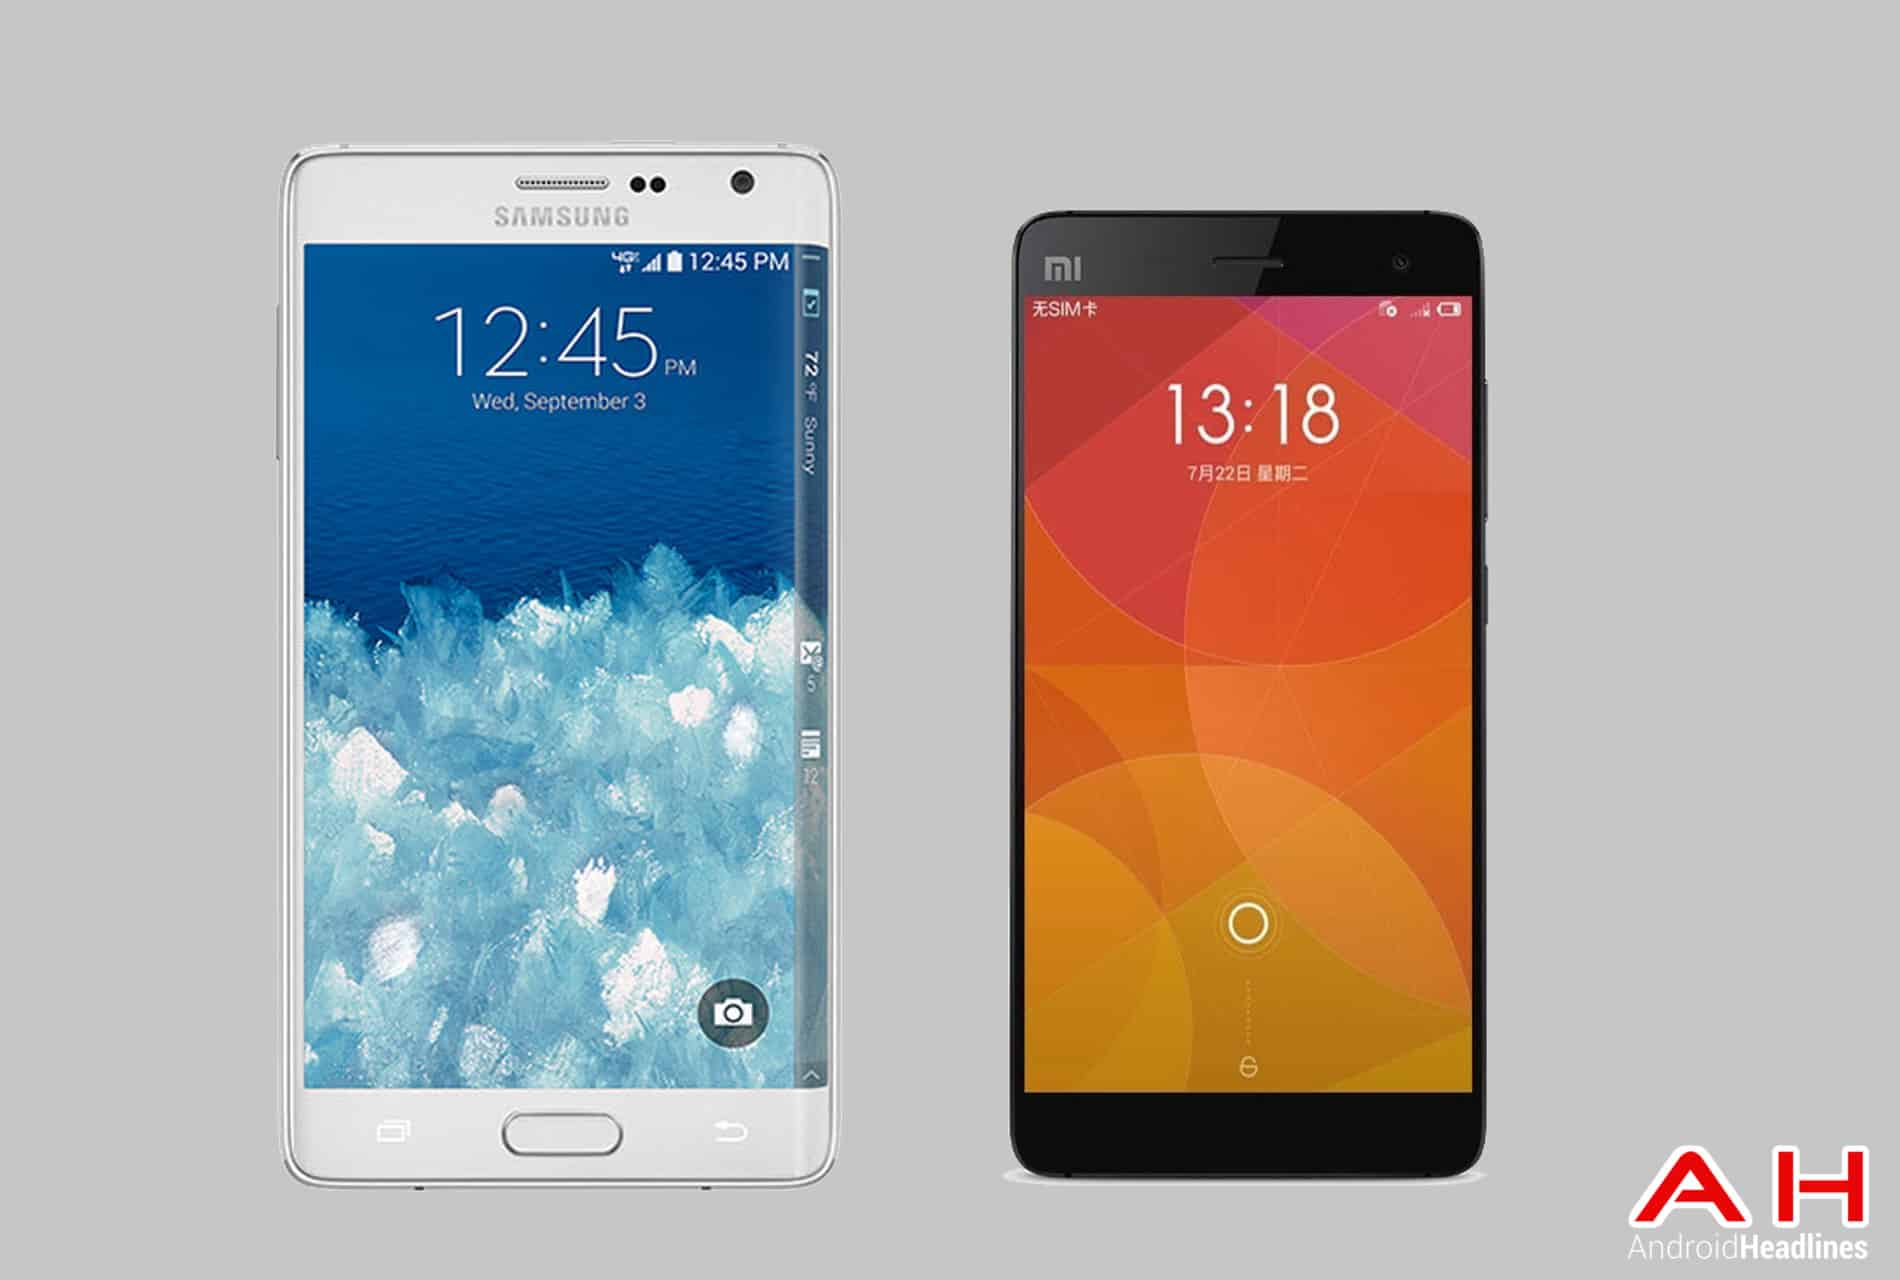 Galaxy Note Edge vs Xiaomi Mi4 cam AH